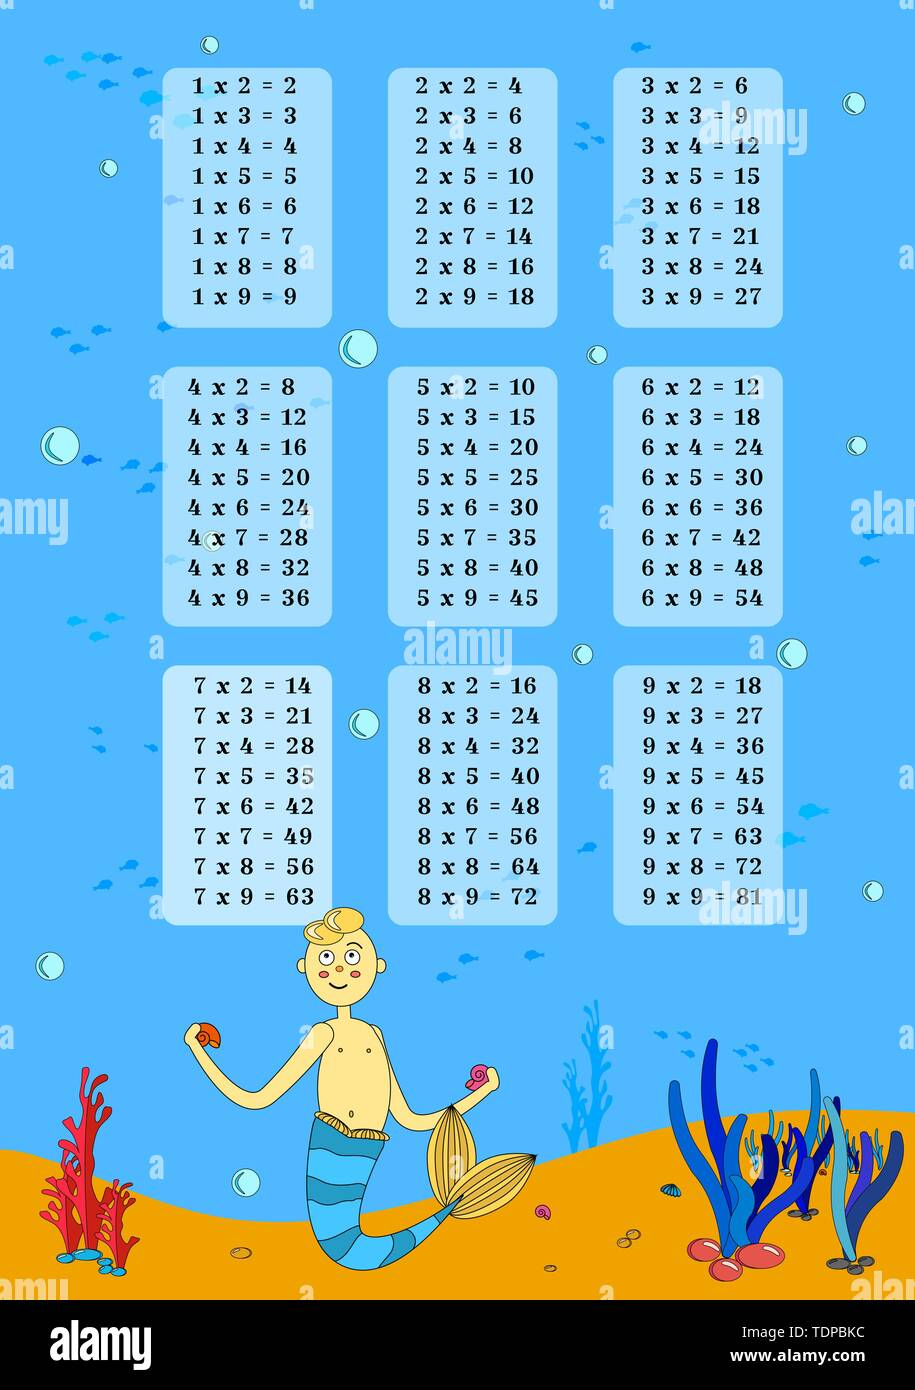 Multiplication Table On The Background With Cartoon Mermaid Print